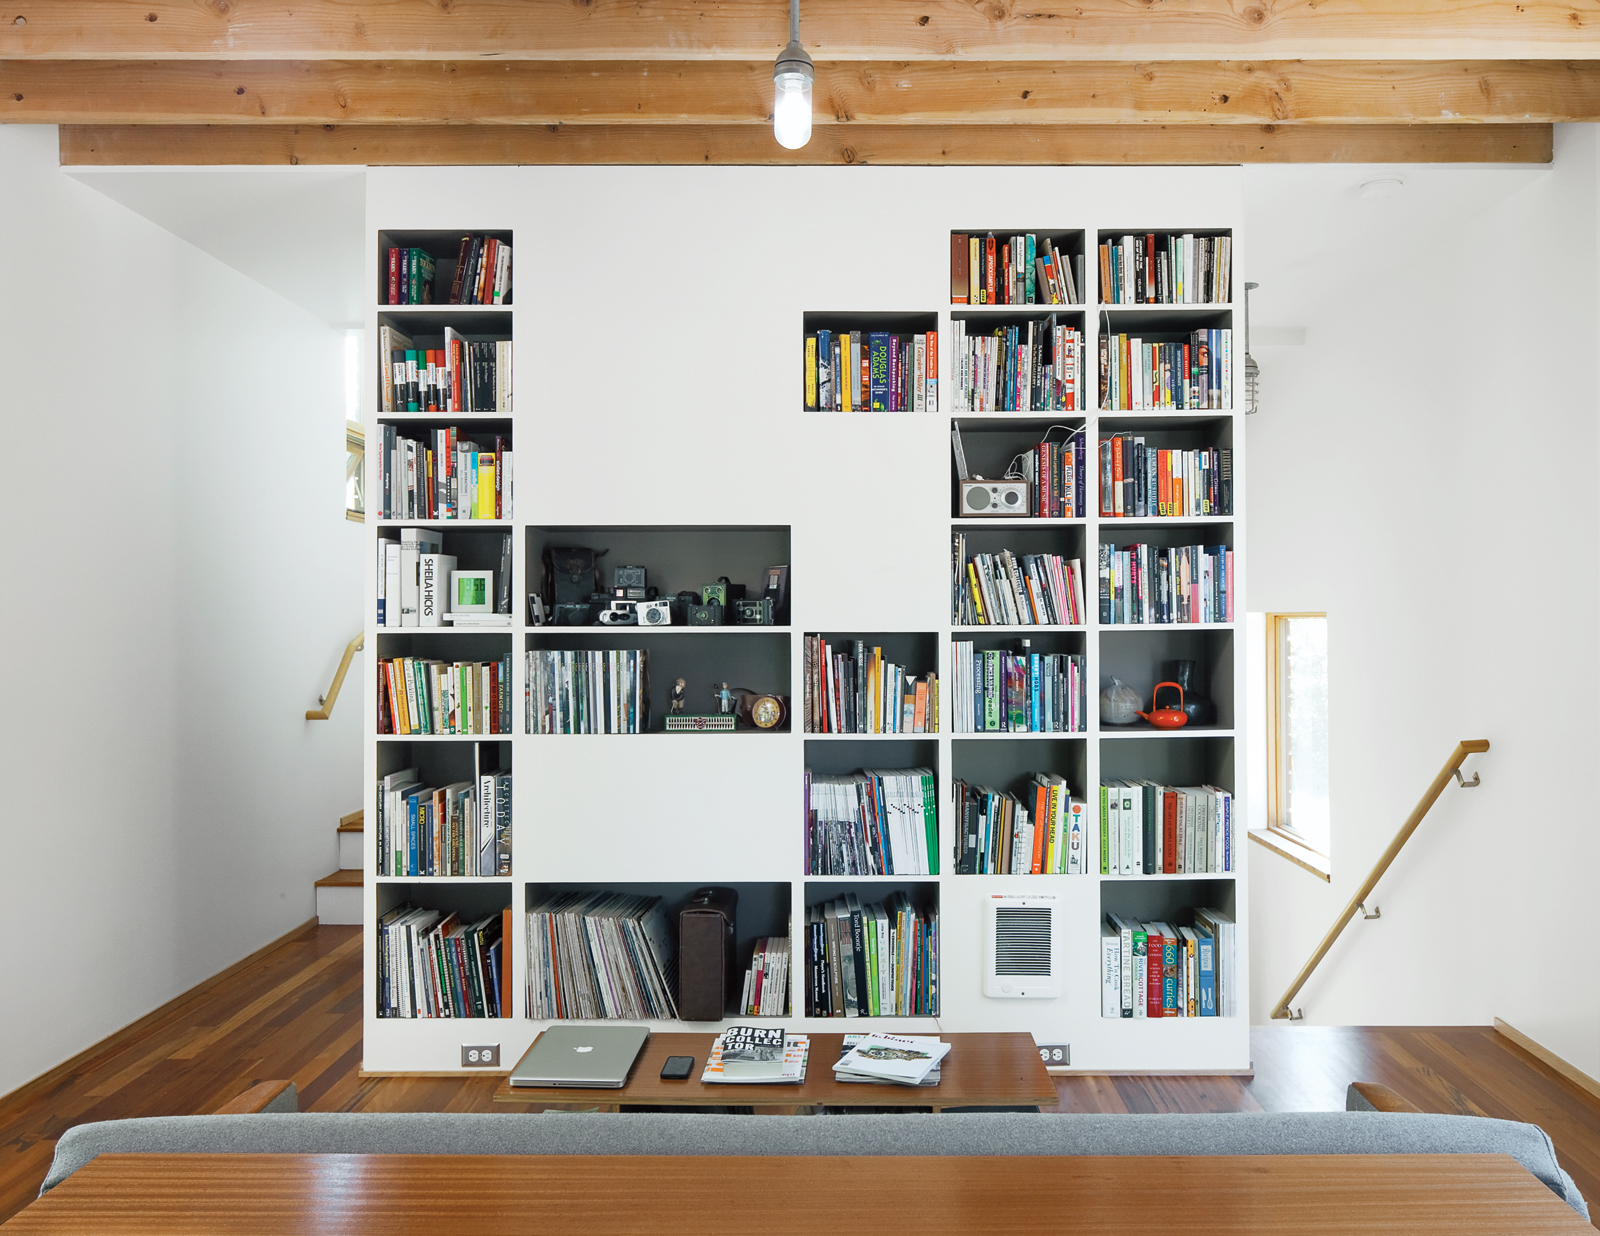 all-we-need-harpoon-house-bookshelf-living-room-interior